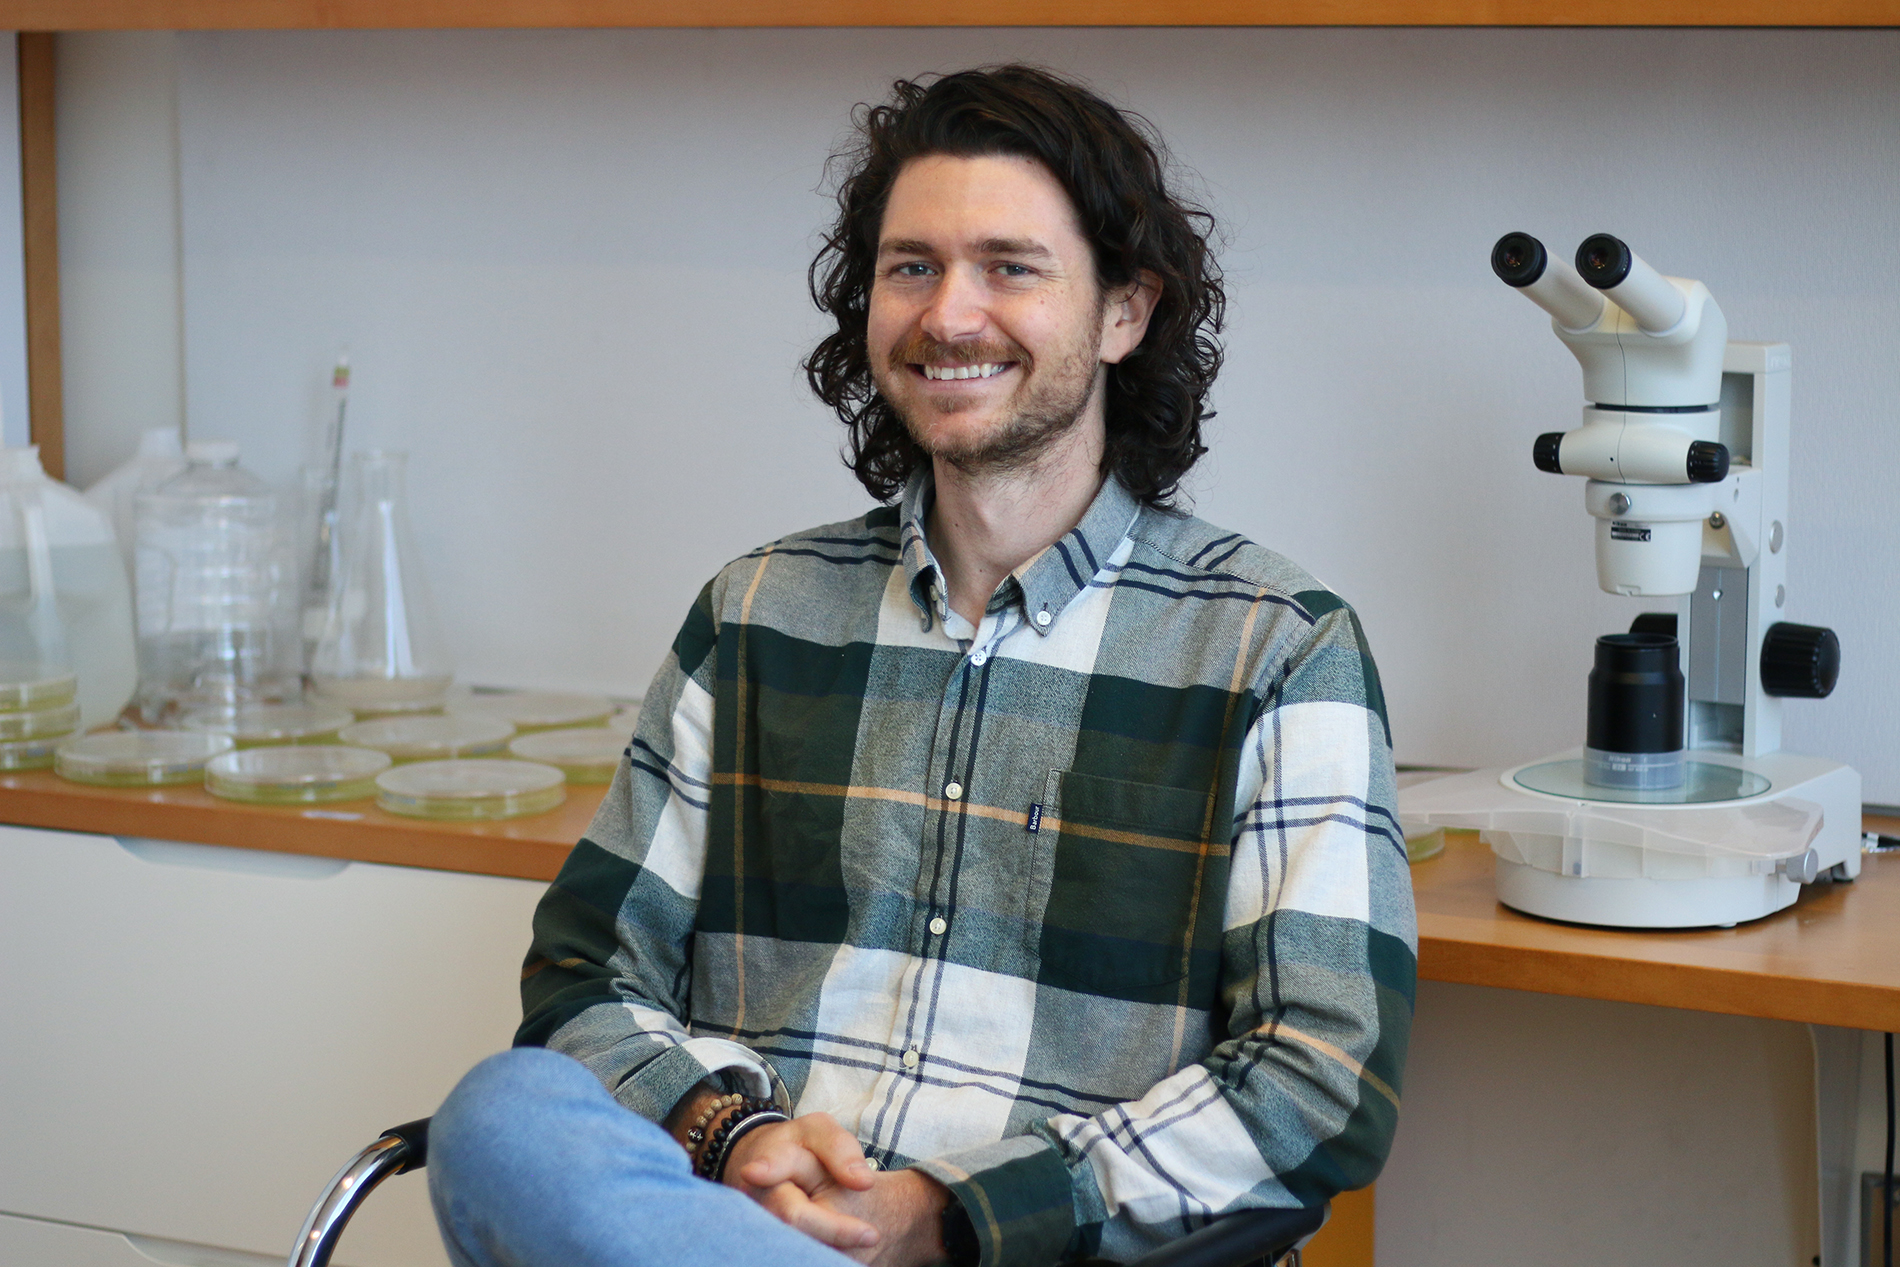 Thomas Boothby came to UNC in 2013 to uncover the resiliency of tardigrades for his postdoctoral research. He began this work in the lab of developmental biologist Bob Goldstein, who's been studying tardigrades since 1999.